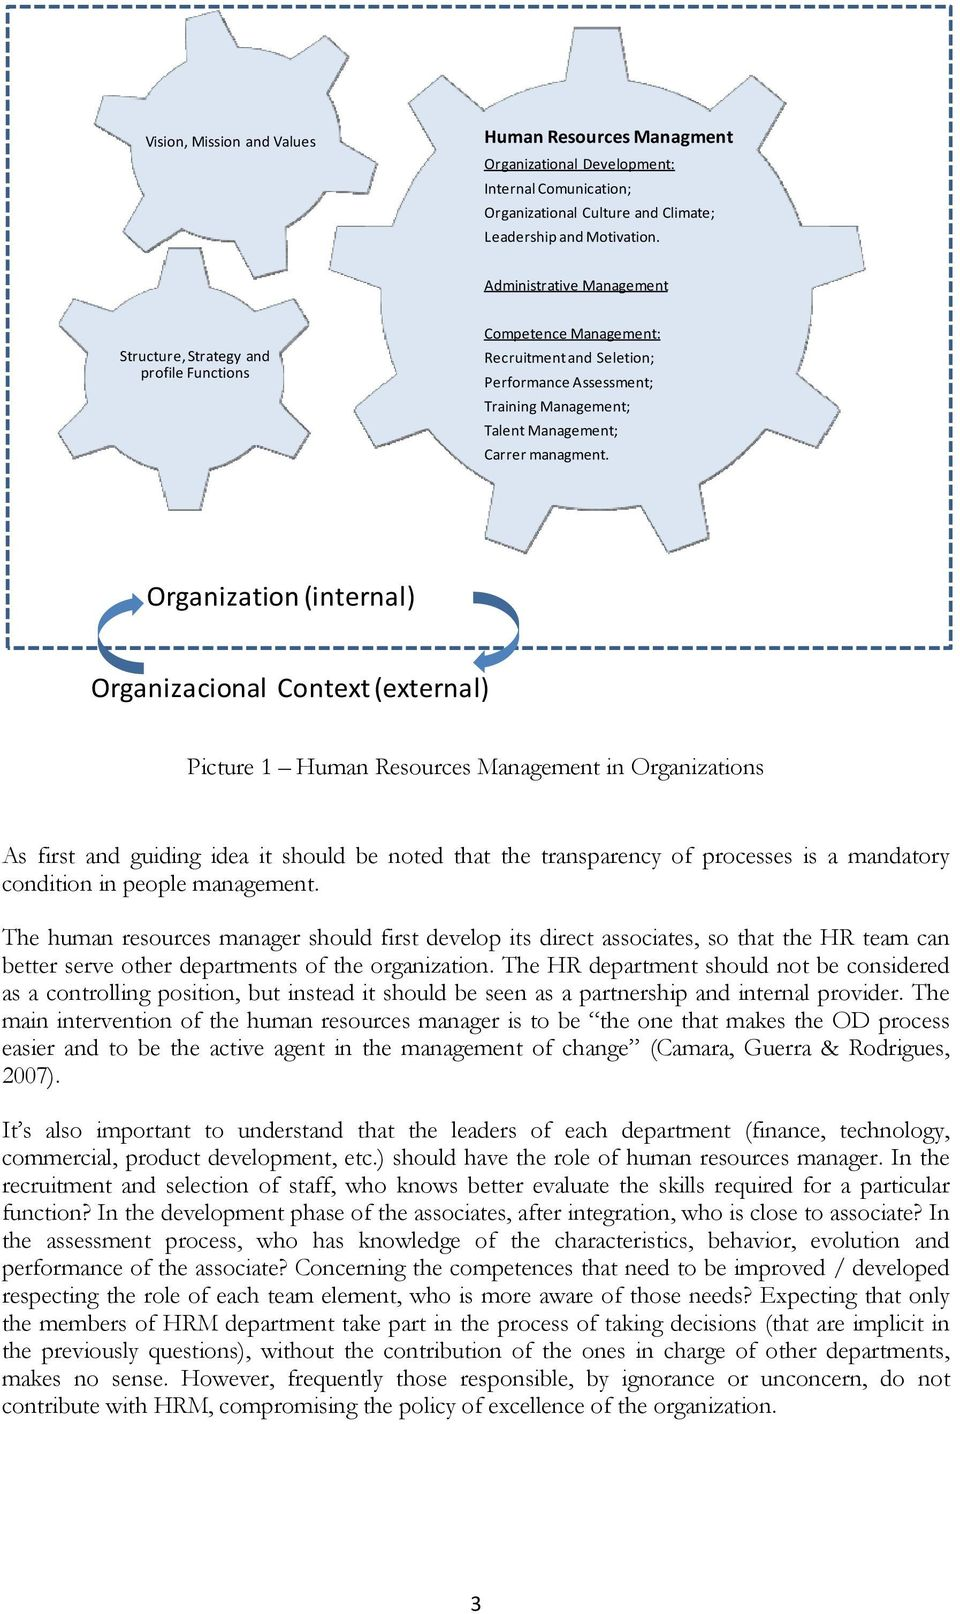 Organization (internal) Organizacional Context(external) Picture 1 Human Resources Management in Organizations As first and guiding idea it should be noted that the transparency of processes is a